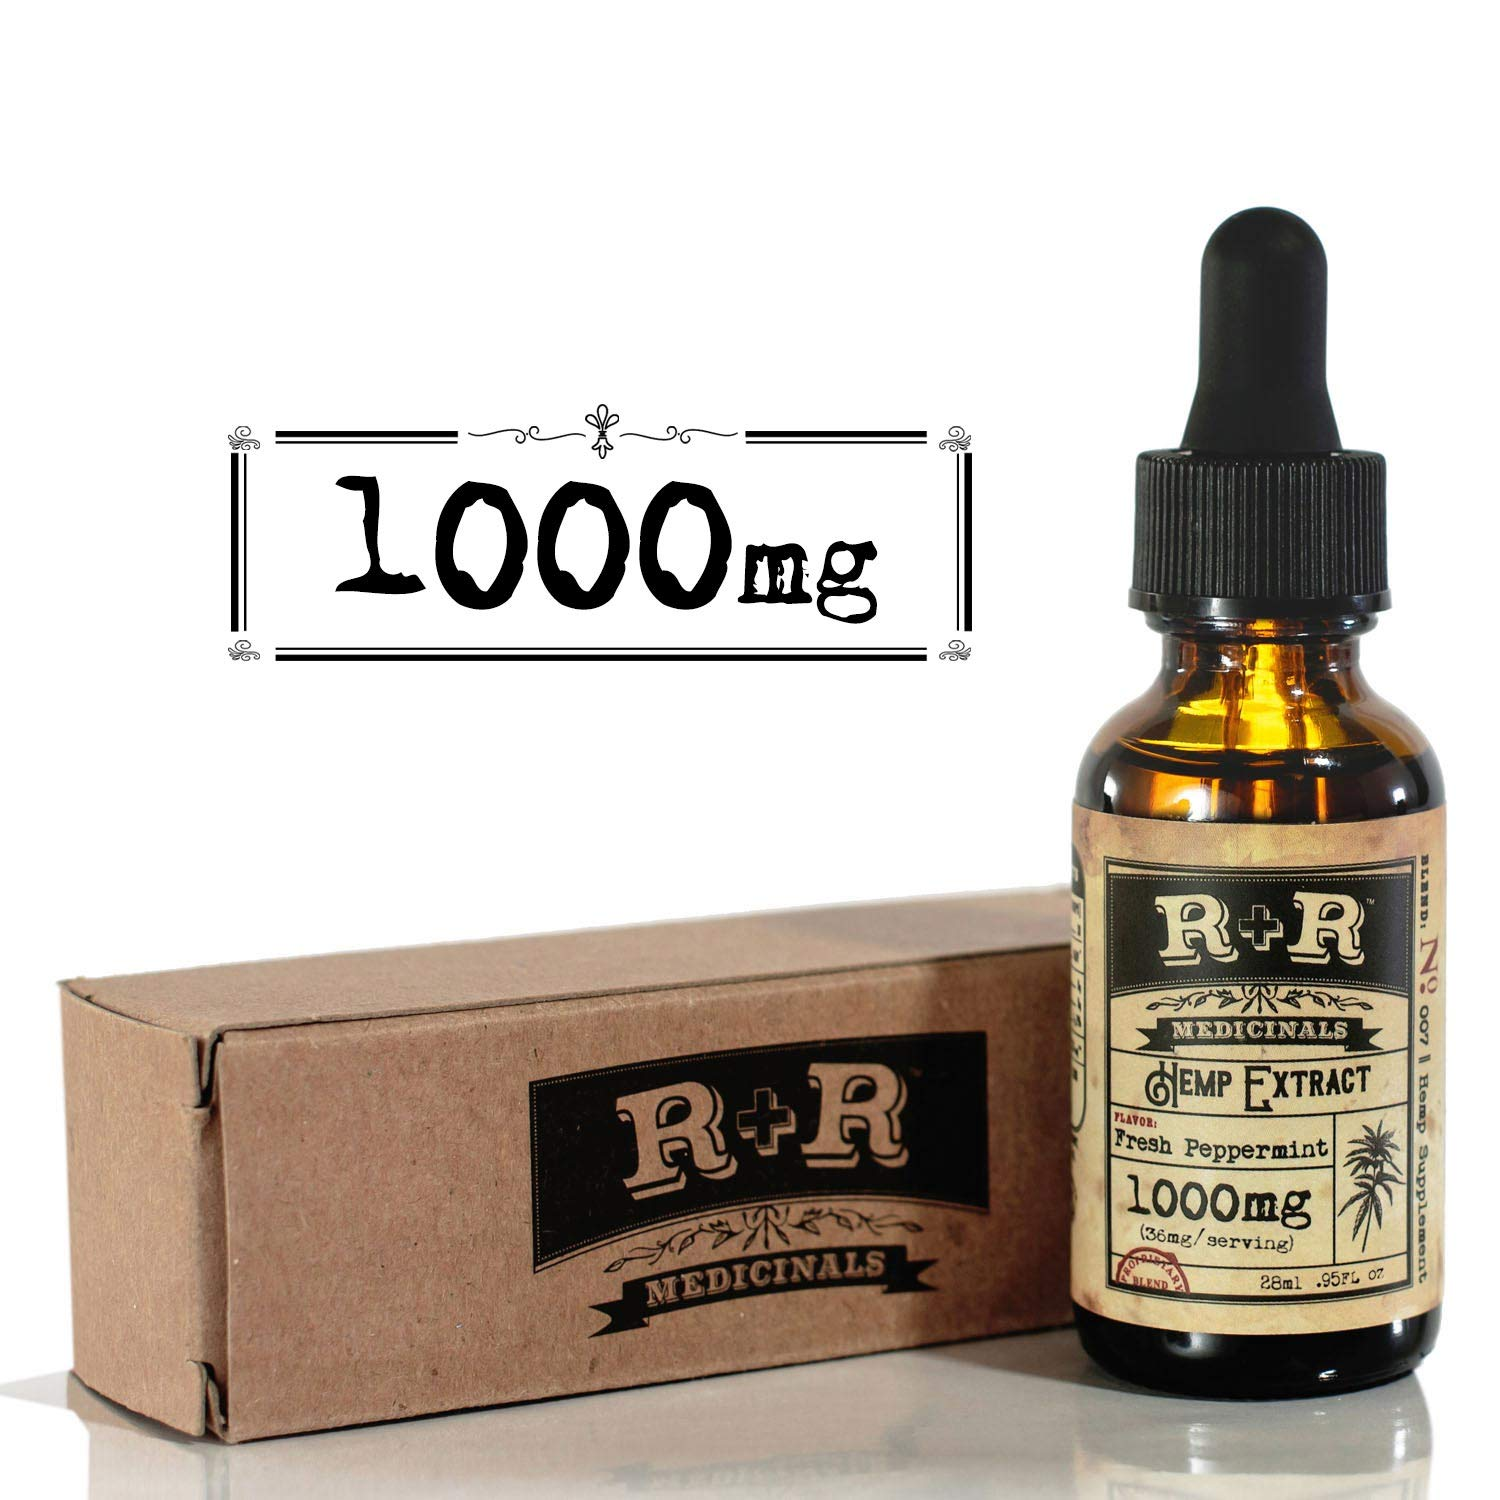 Hemp Oil 1000mg :: Hemp Oil for Pain :: Stress Relief, Mood Support, Healthy Sleep Patterns, Skin Care (1000mg, 36mg per Serving x 28 Servings) : R+R Medicinals by R+R Medicinals (Image #1)